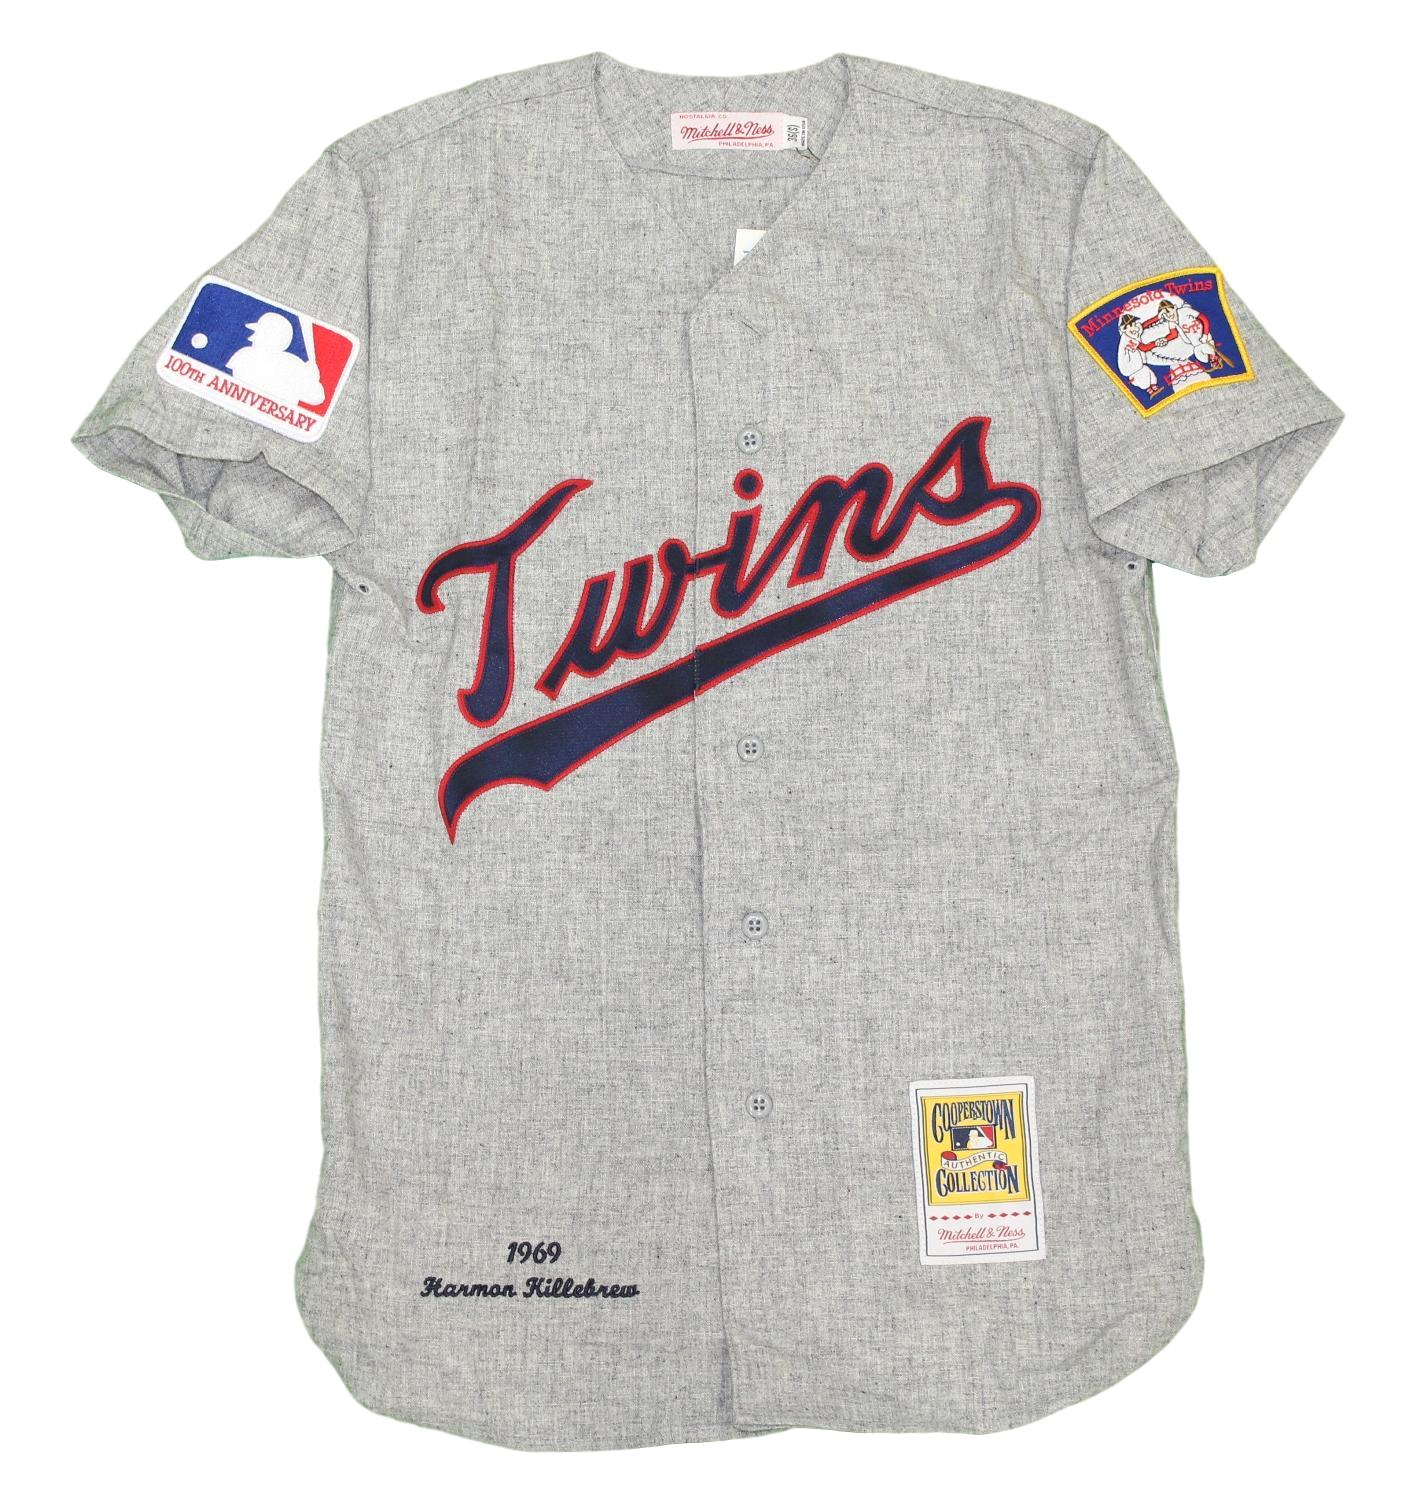 8f370584bba Details about Harmon Killebrew Minnesota Twins Mitchell & Ness Auth 1969  Jersey - Gray, S/36